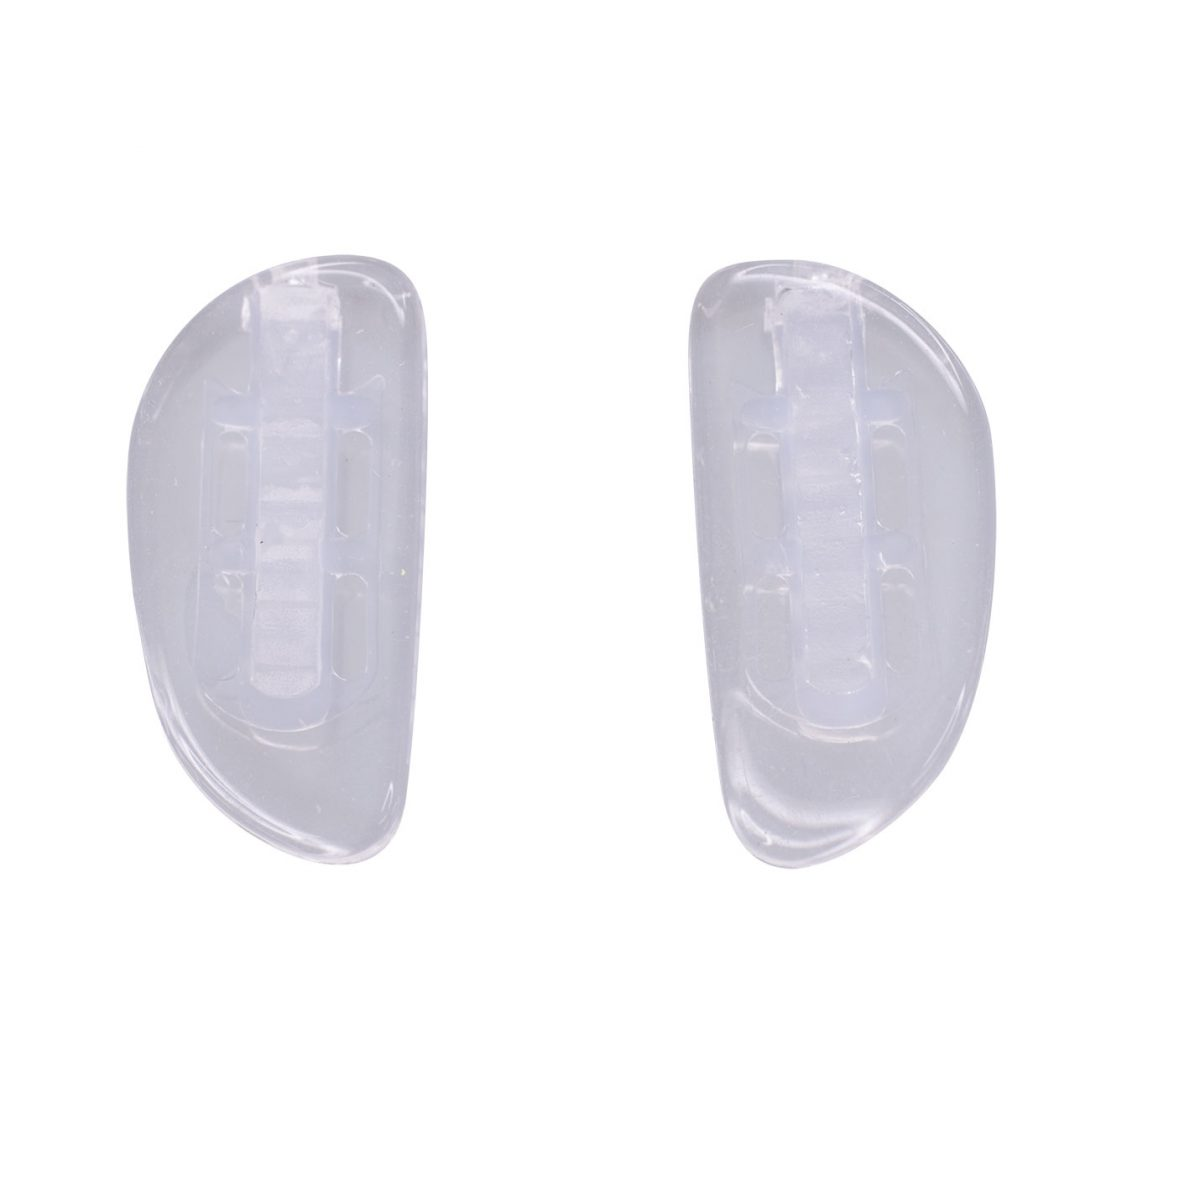 Bayonette Silicone Nose Pads